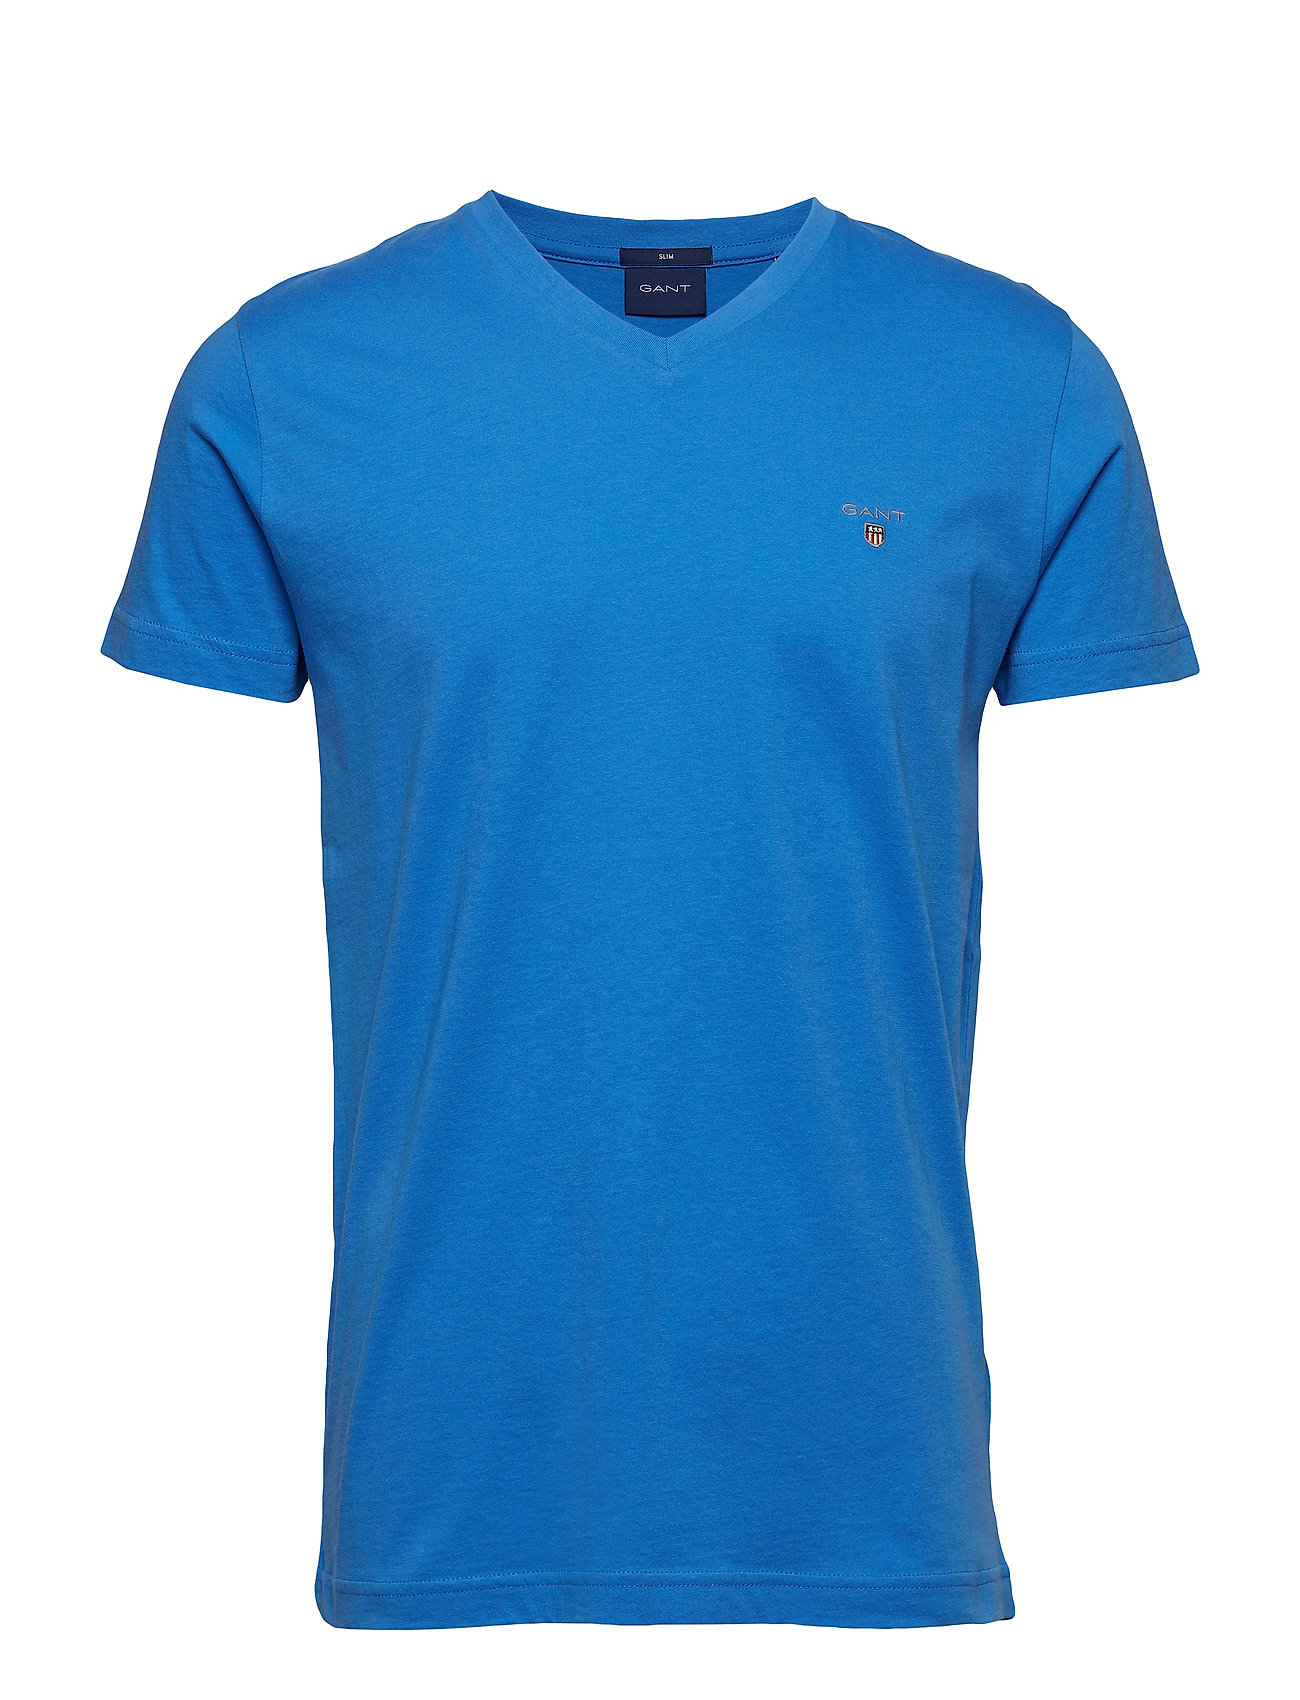 GANT THE ORIGINAL SLIM V-NECK T-SHIRT